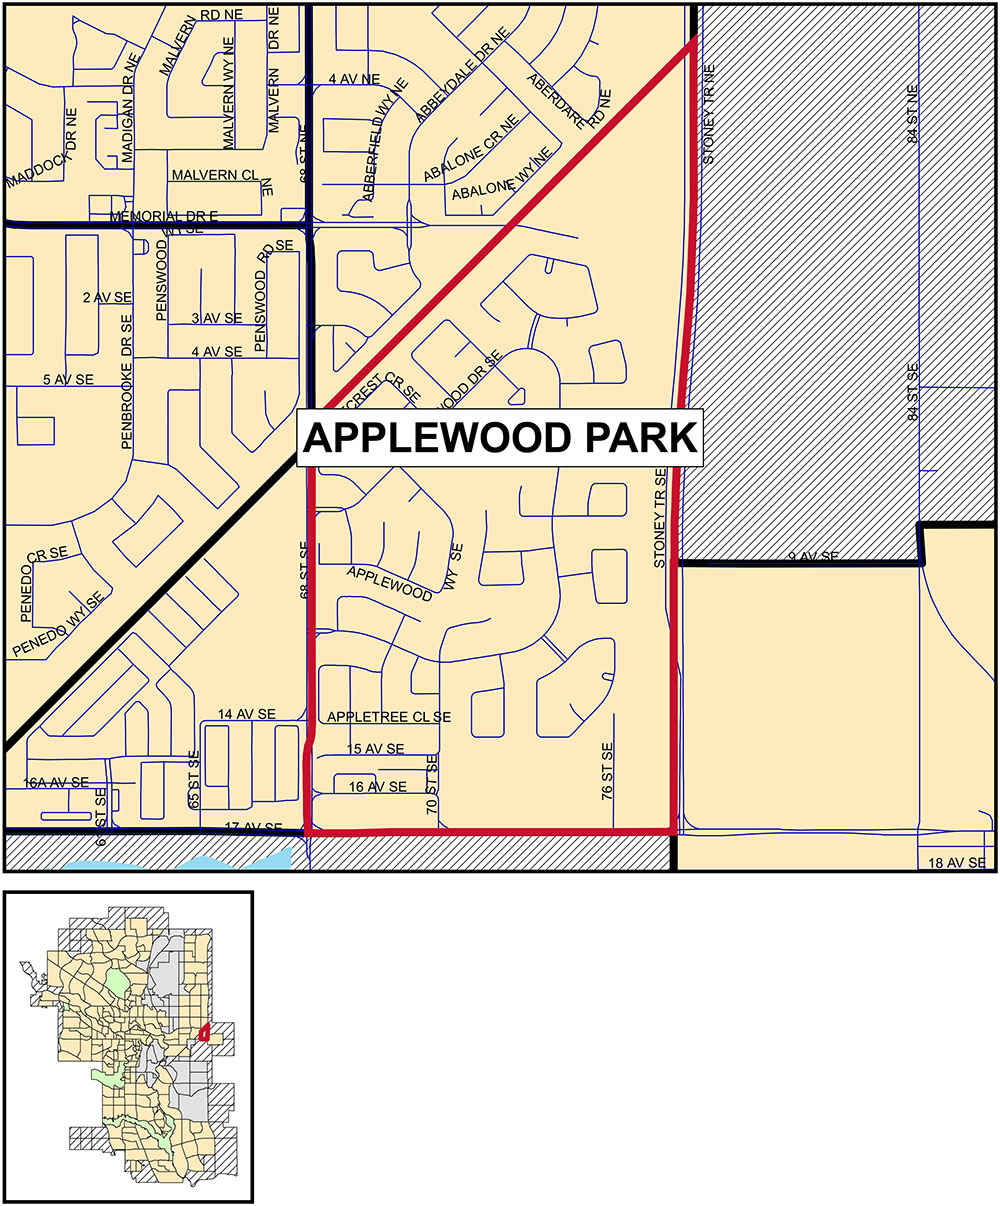 Applewood Park community profile